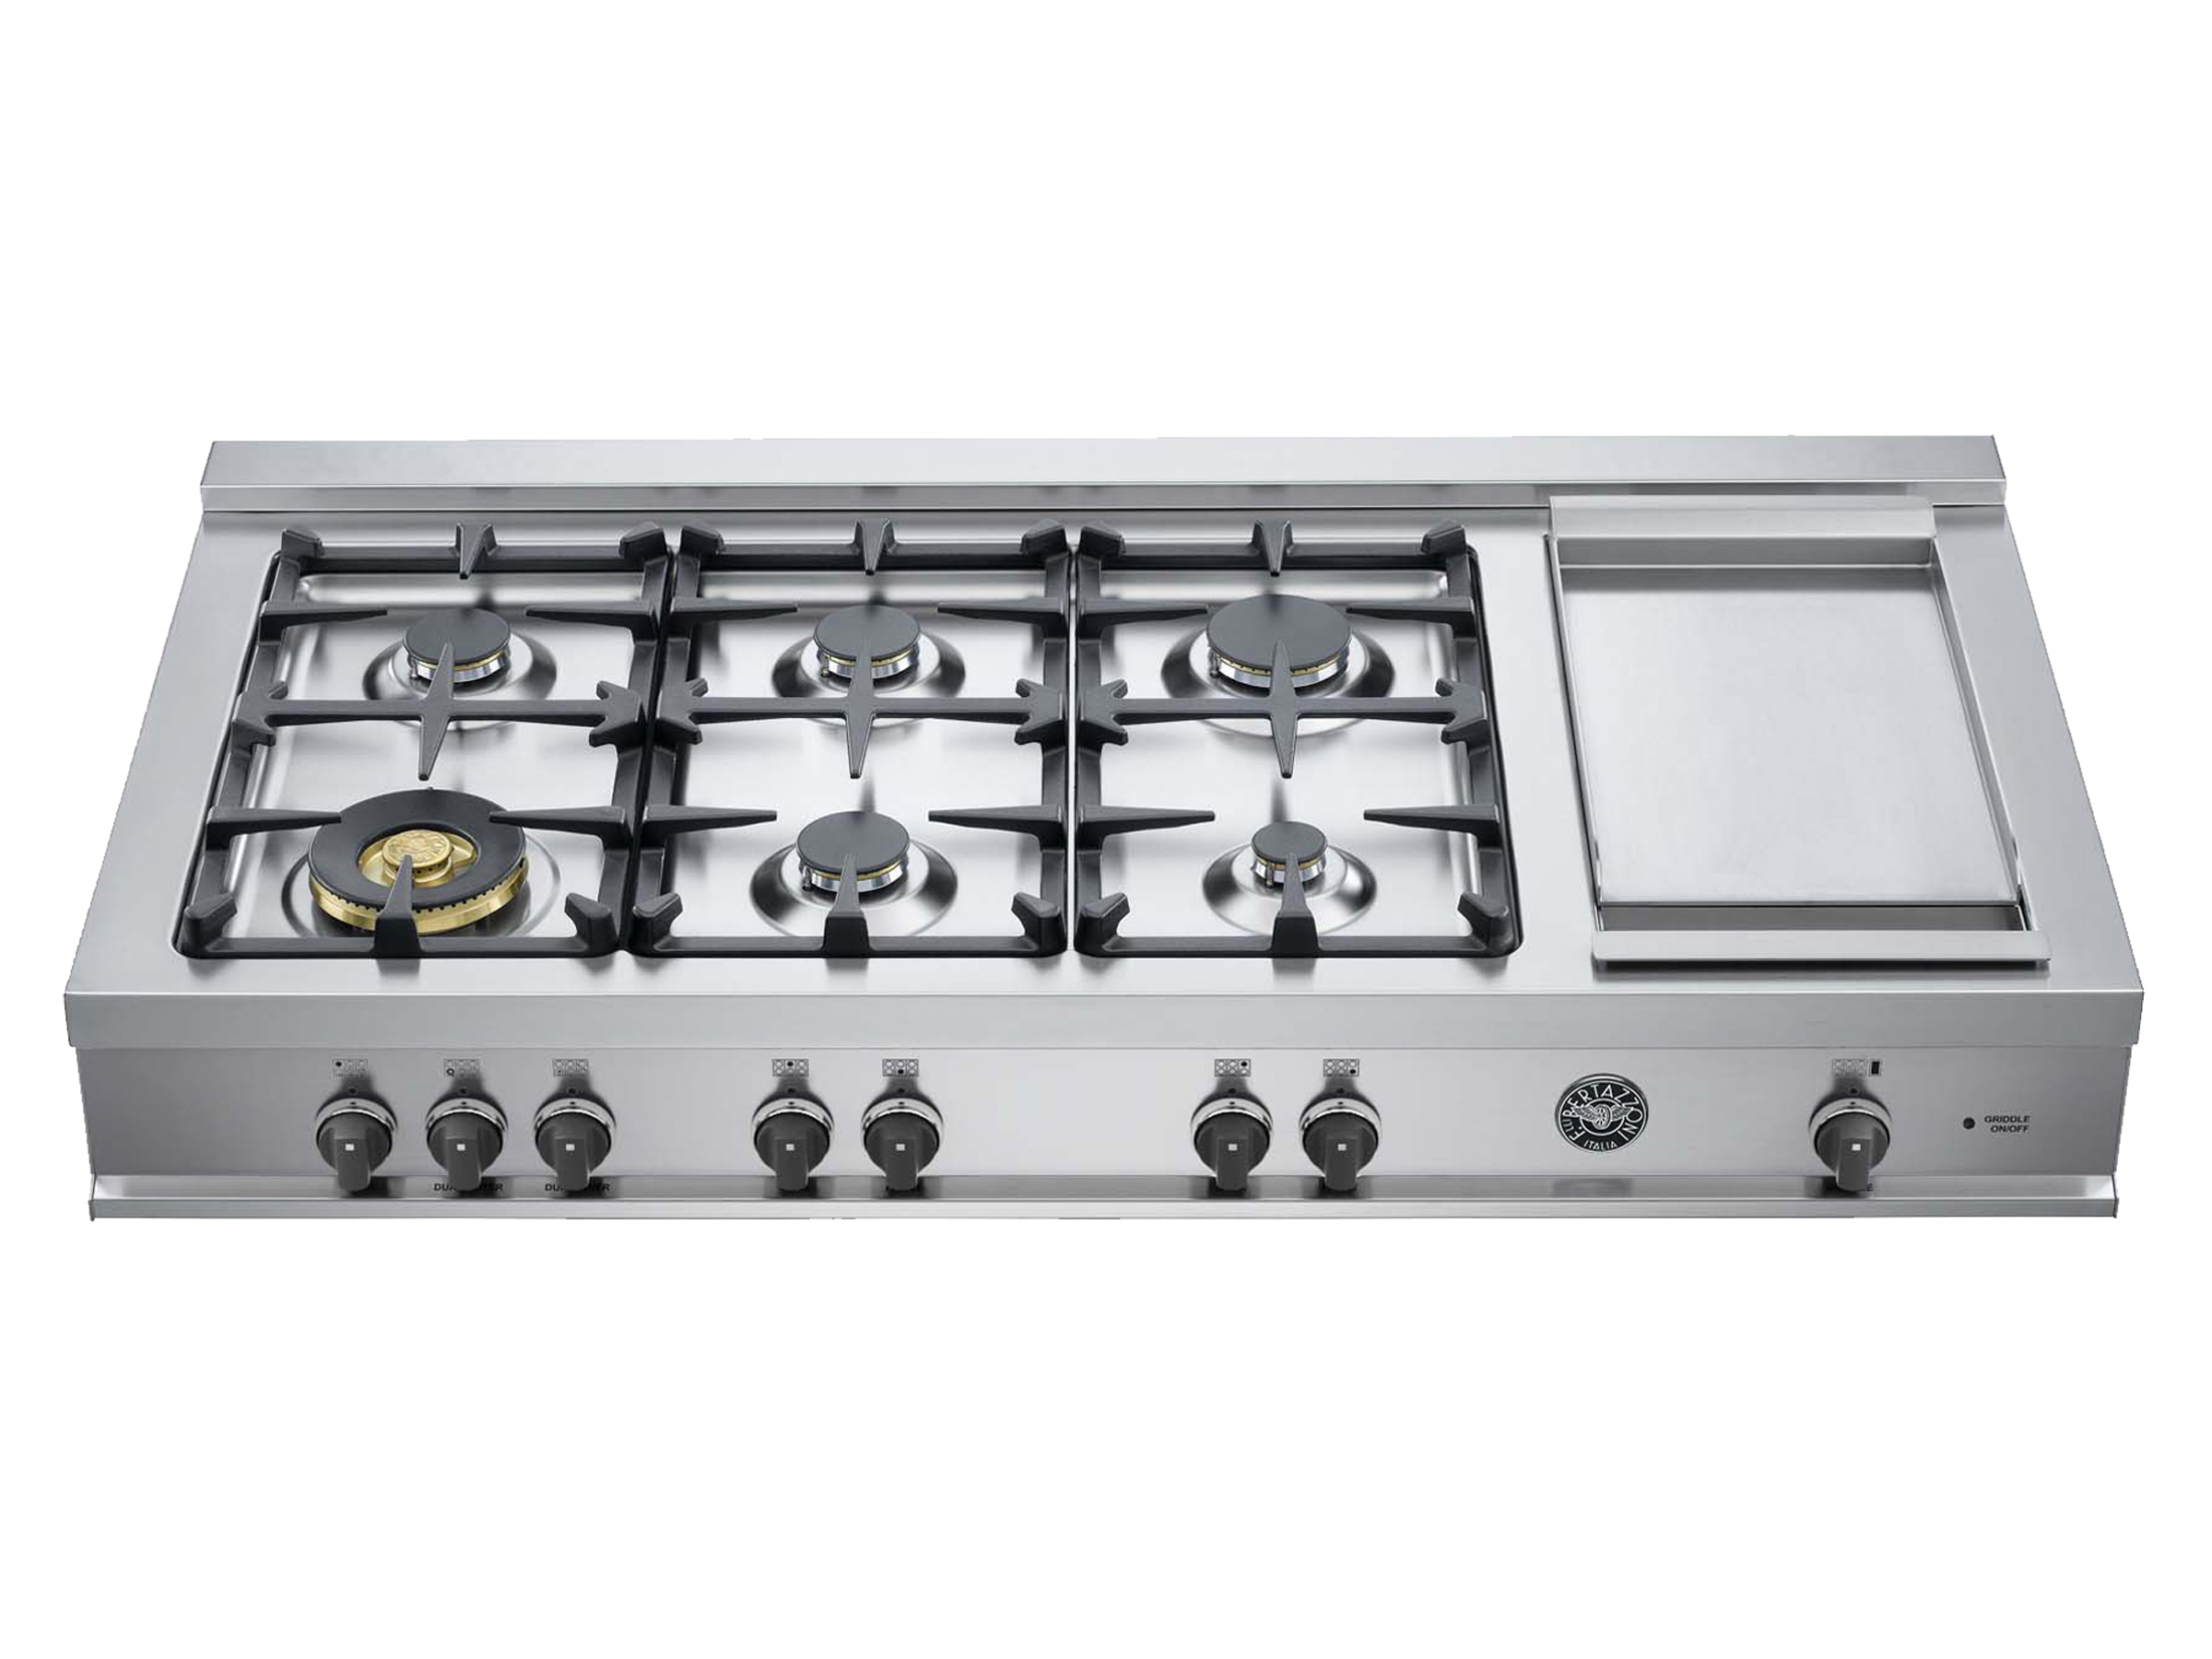 Stupendous Range Burners Griddle Gas Cook Griddle Griddle Bertazzoni Stainless Range Burners Grill Griddle Bertazzoni Wolf Gas Cook houzz-02 Gas Cooktop With Griddle